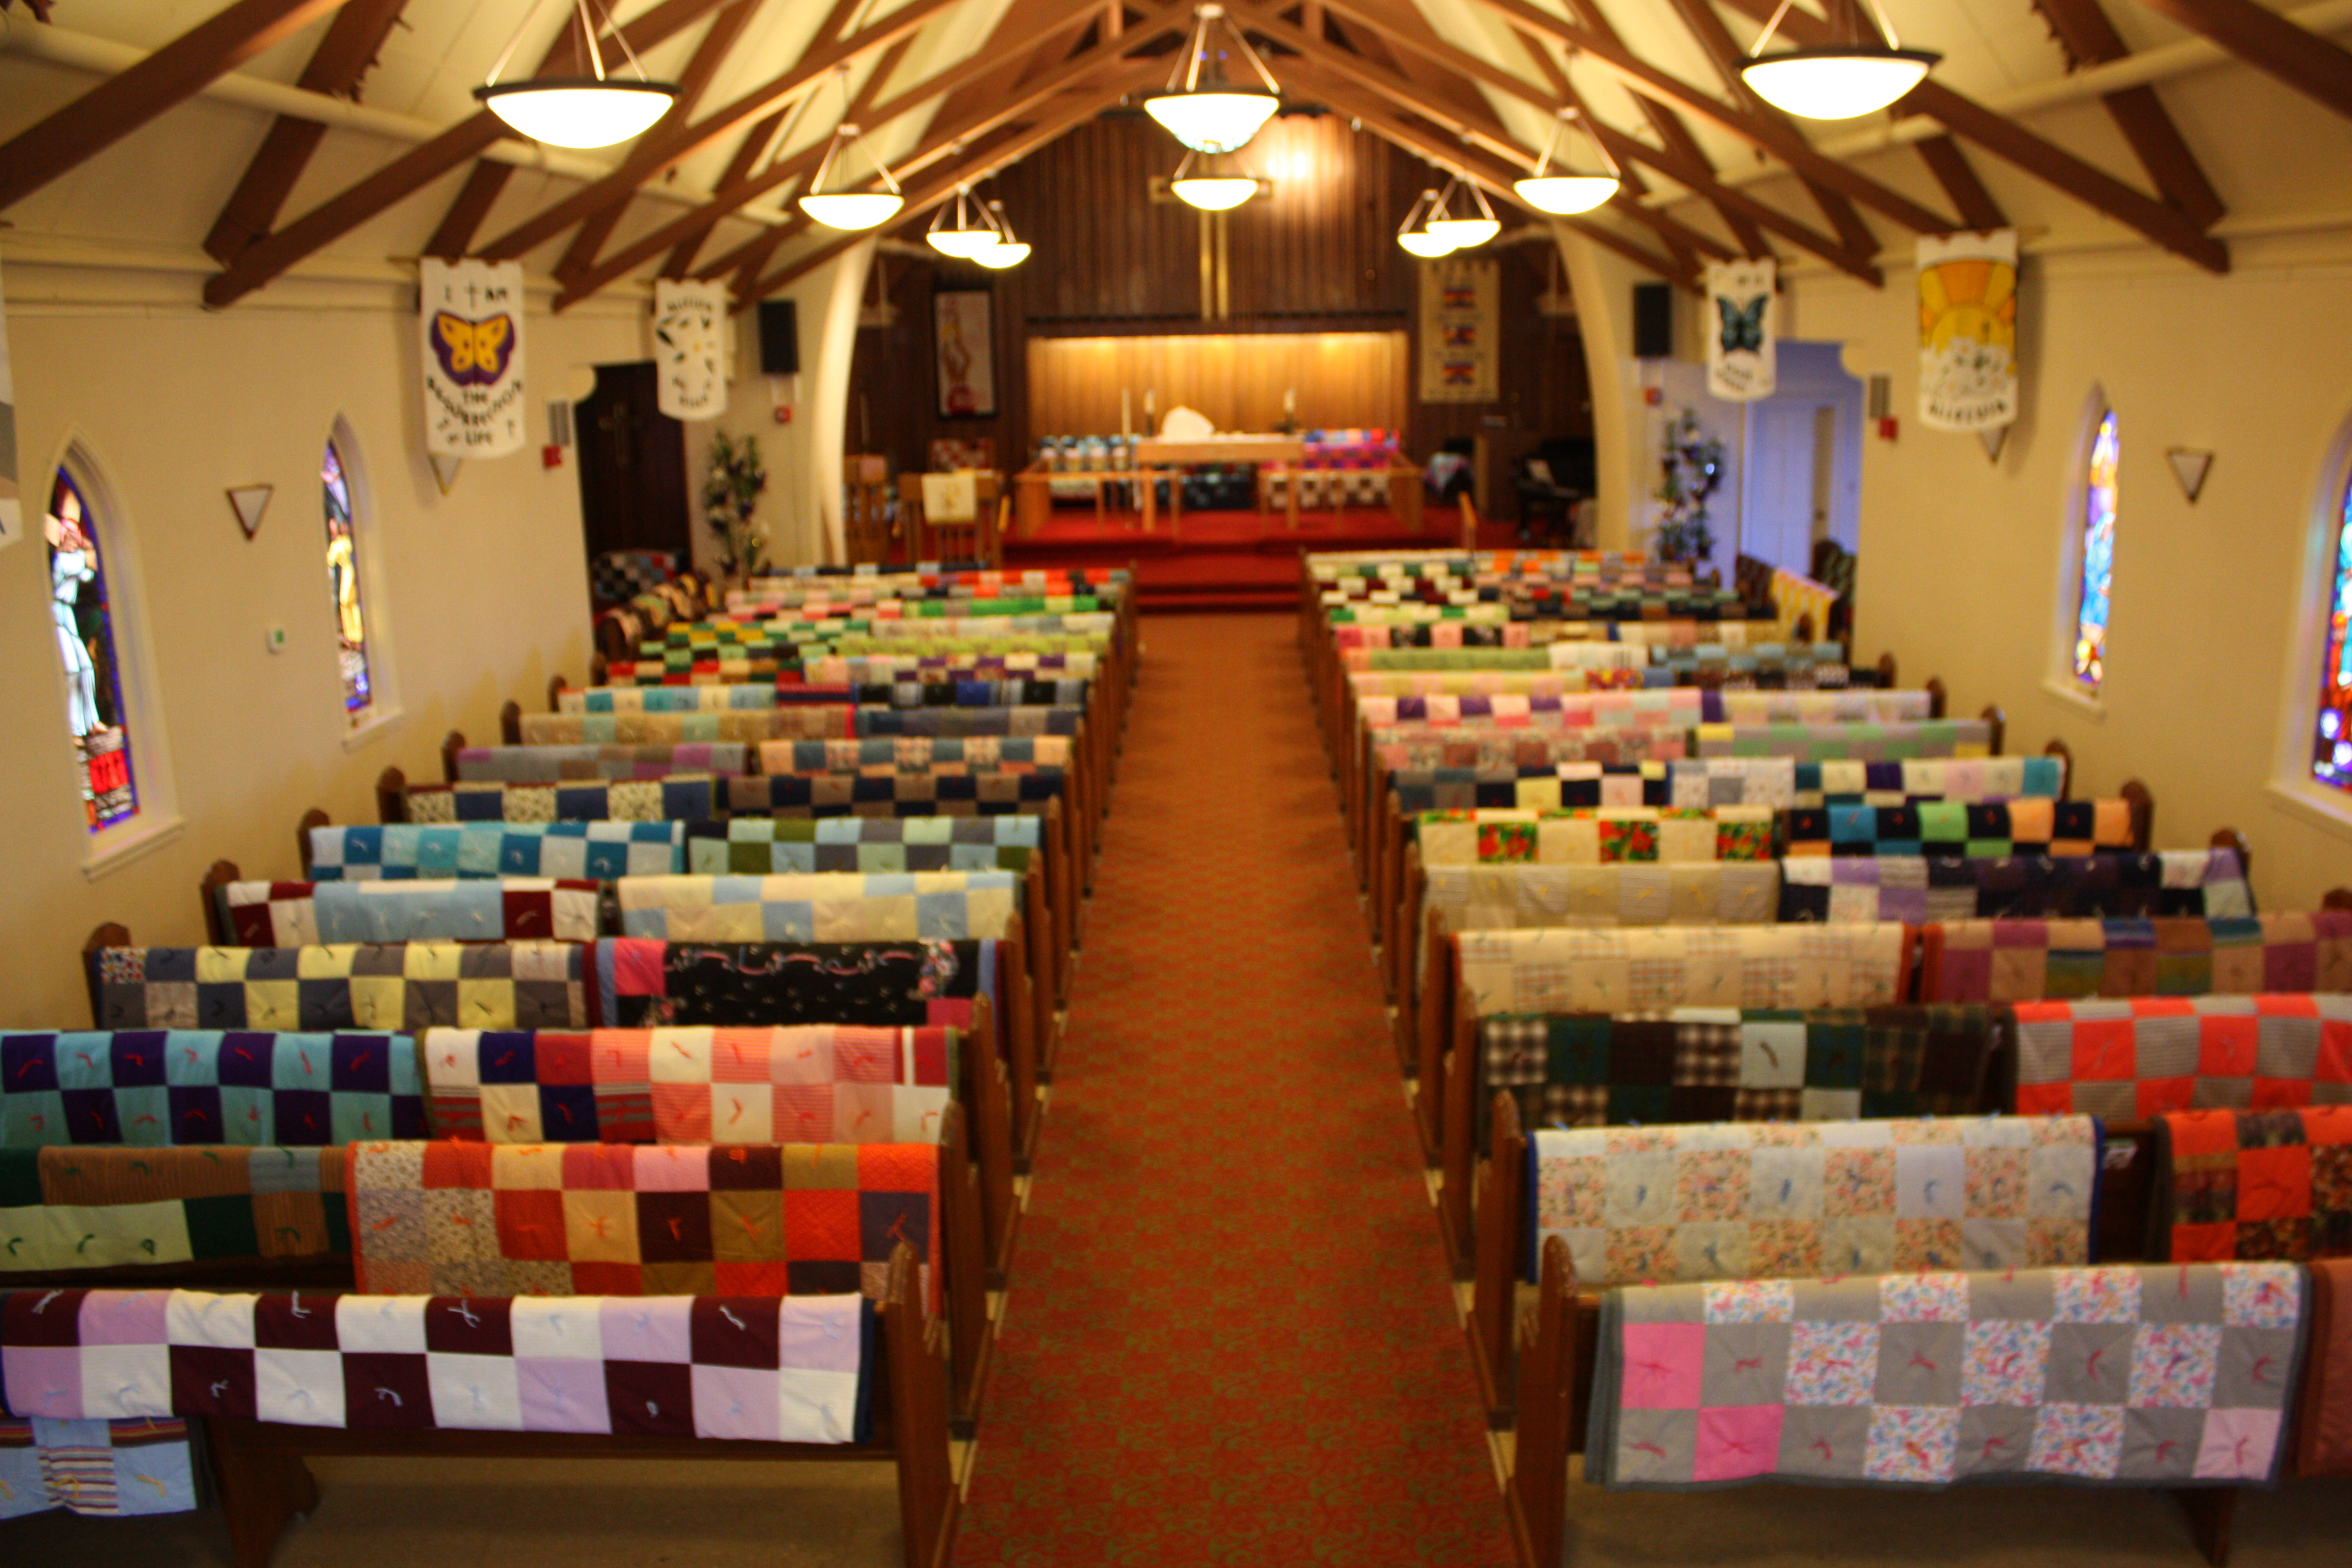 images/stories/HeaderImages/Frame2/Zion_in_quilts_above.JPG